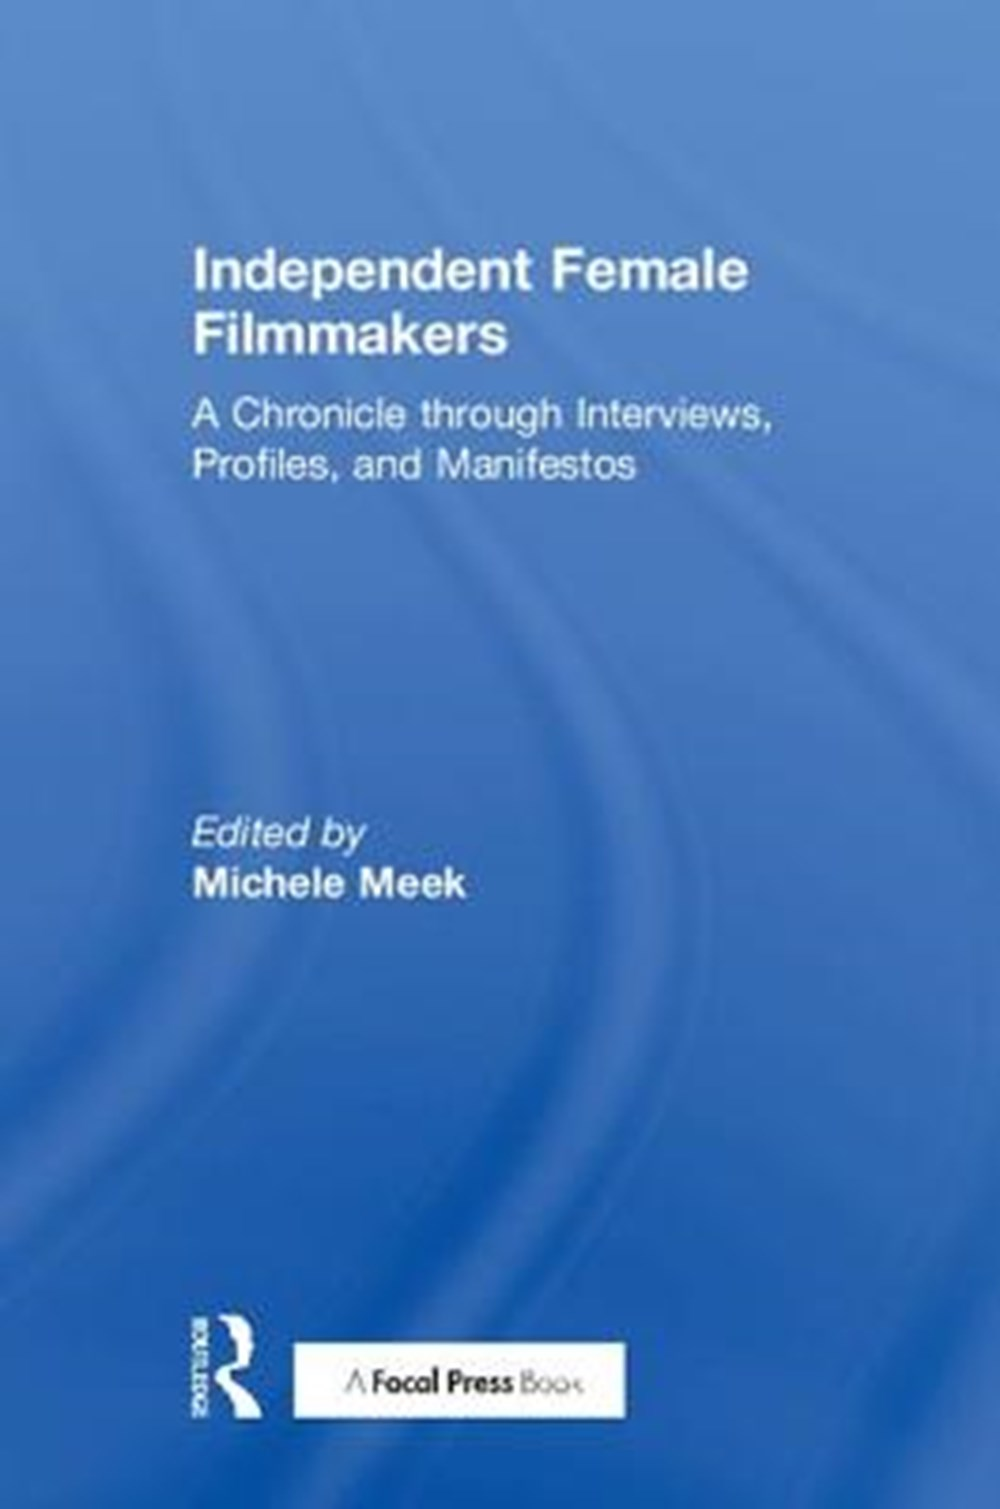 Independent Female Filmmakers A Chronicle Through Interviews, Profiles, and Manifestos